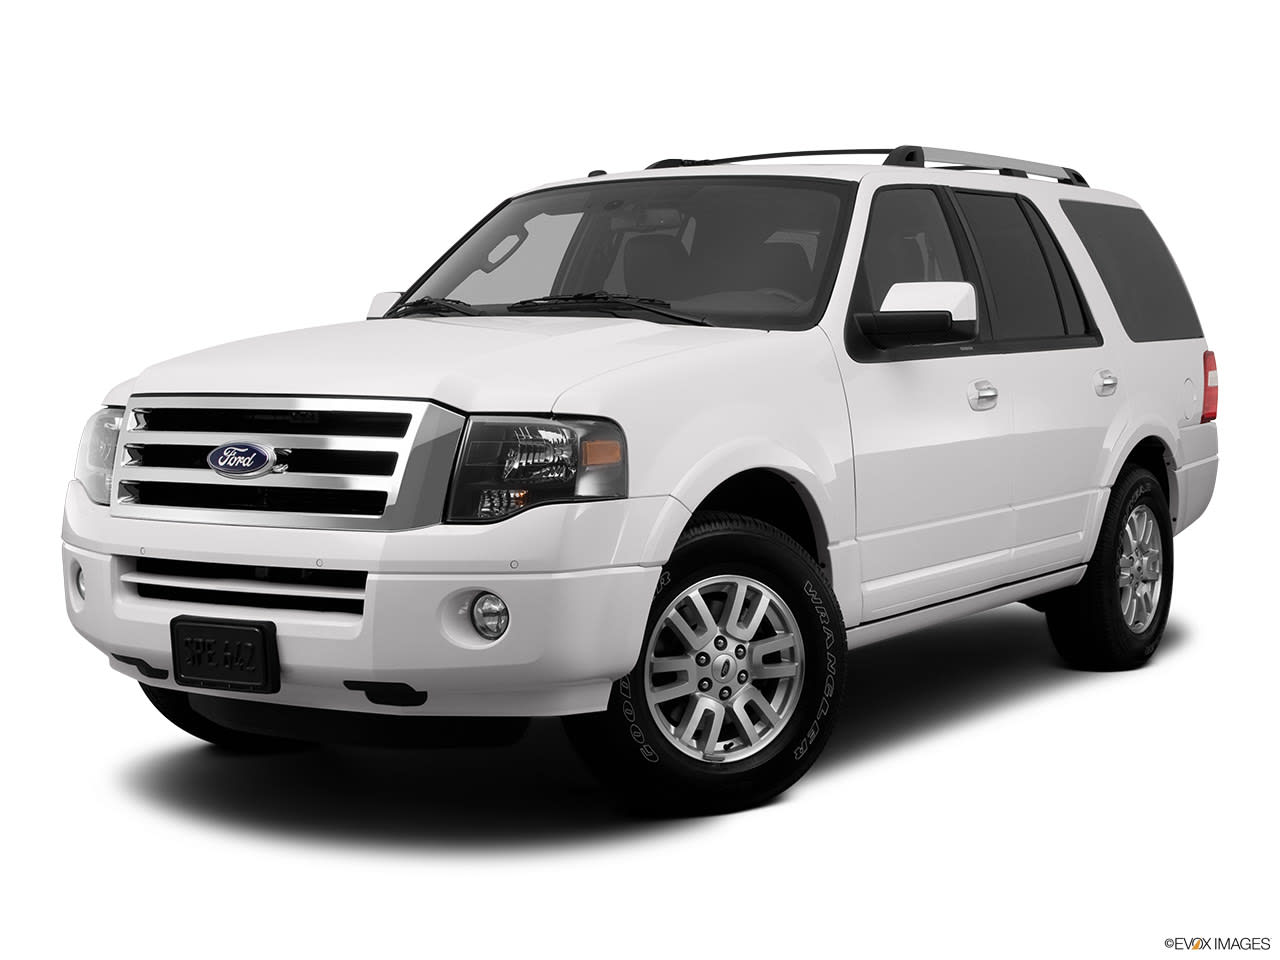 A Buyer's Guide to the 2012 Ford Expedition | YourMechanic